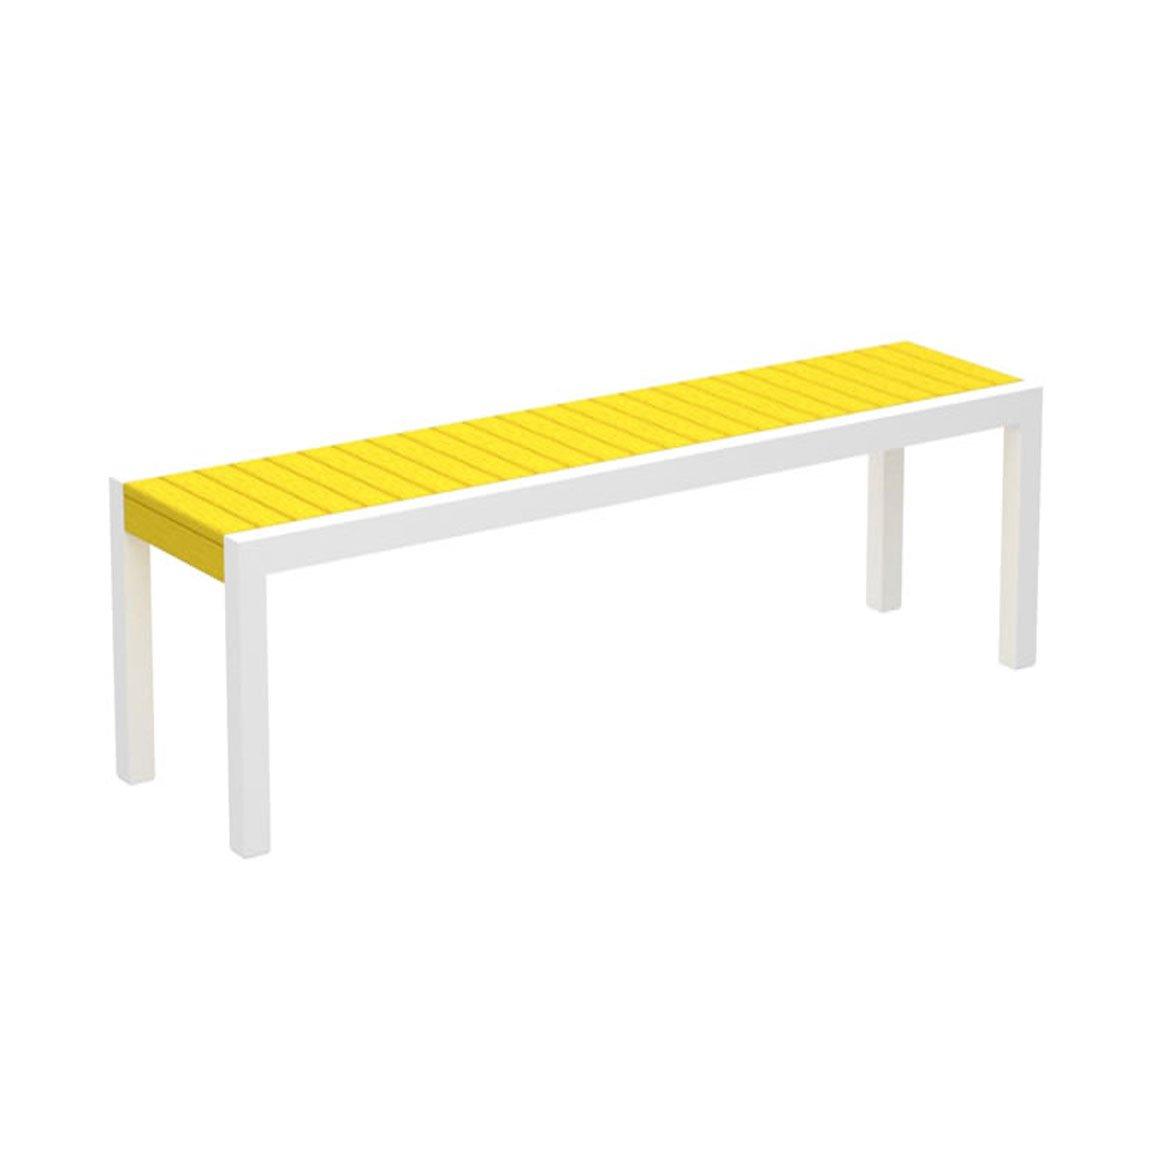 68'' MOD Bench - Recycled HDPE lumber and Aluminum frame